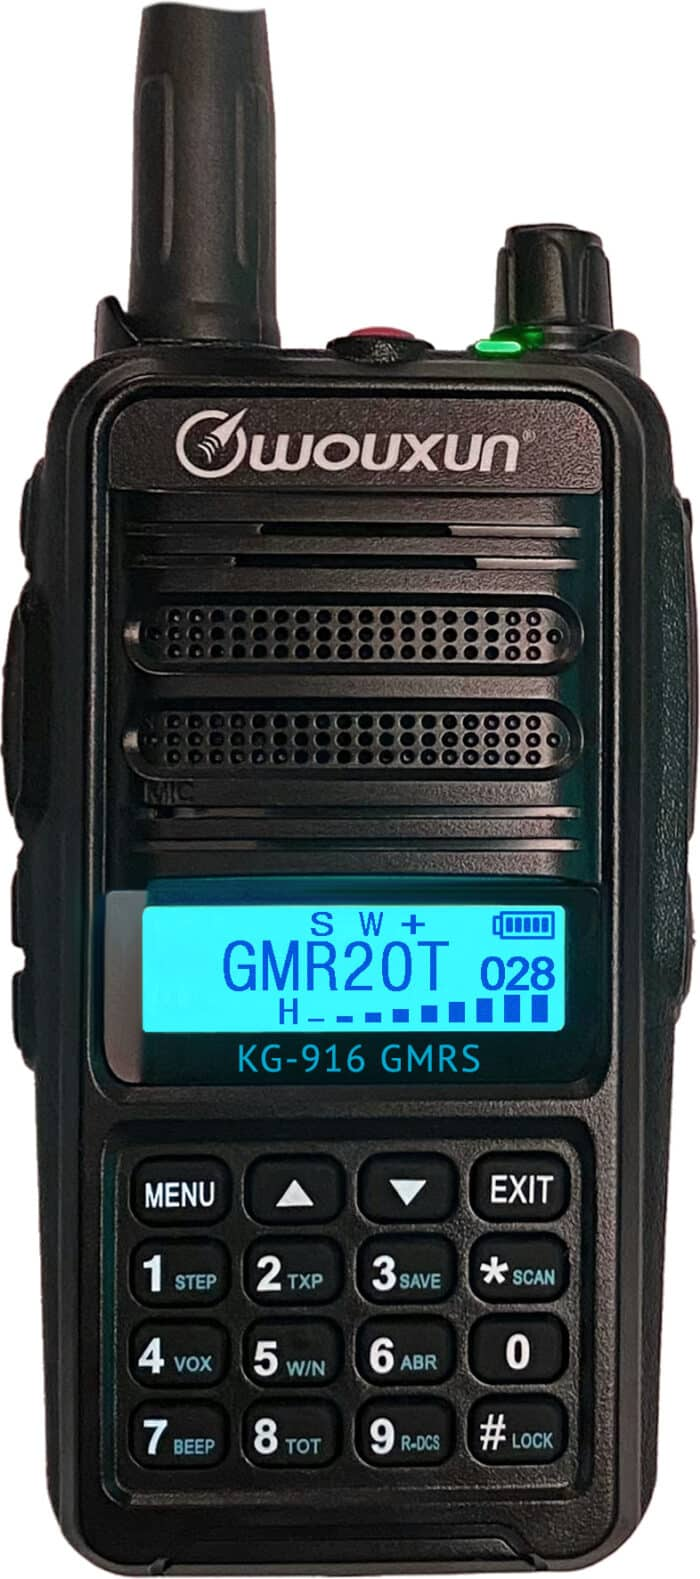 KG-916 GMRS Accessories